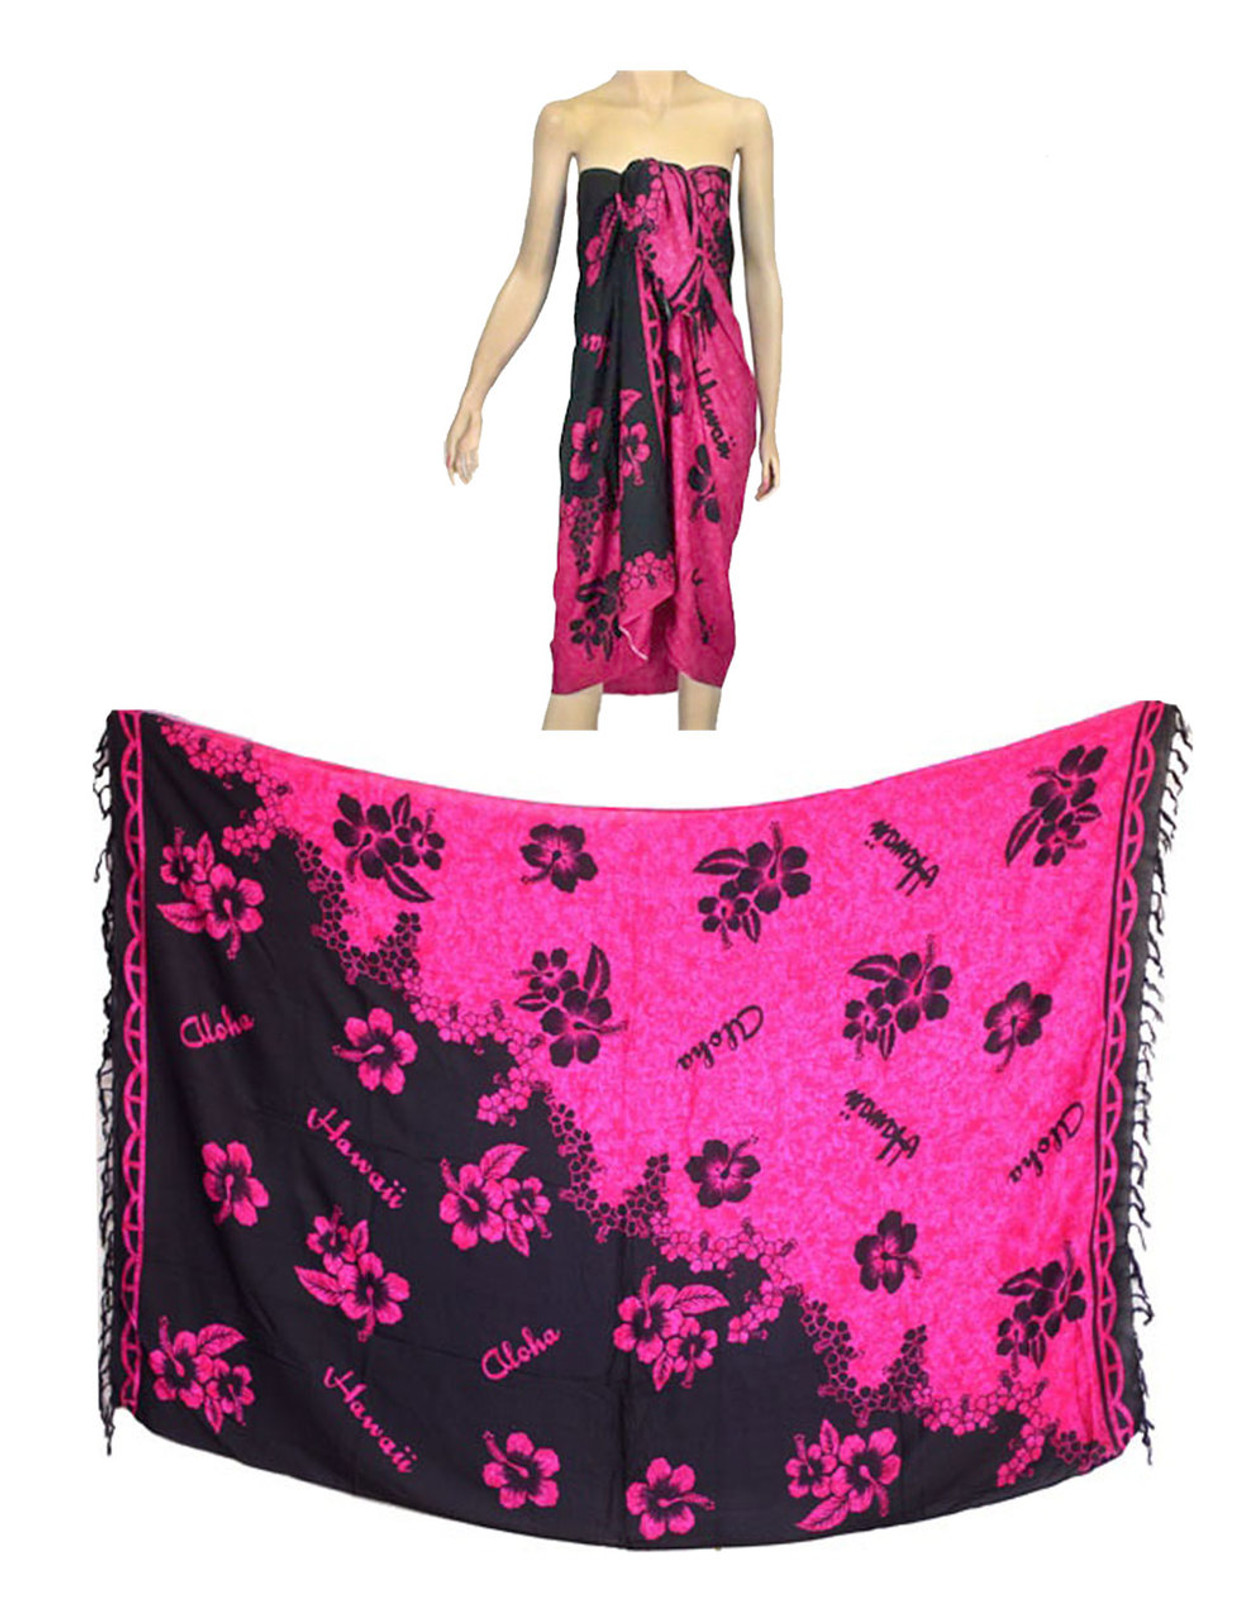 b9dcda567a Sarong Pareo Cover Up Hibiscus Hot Pink 100% Soft Rayon Fabric Beach / Pool  Pareo